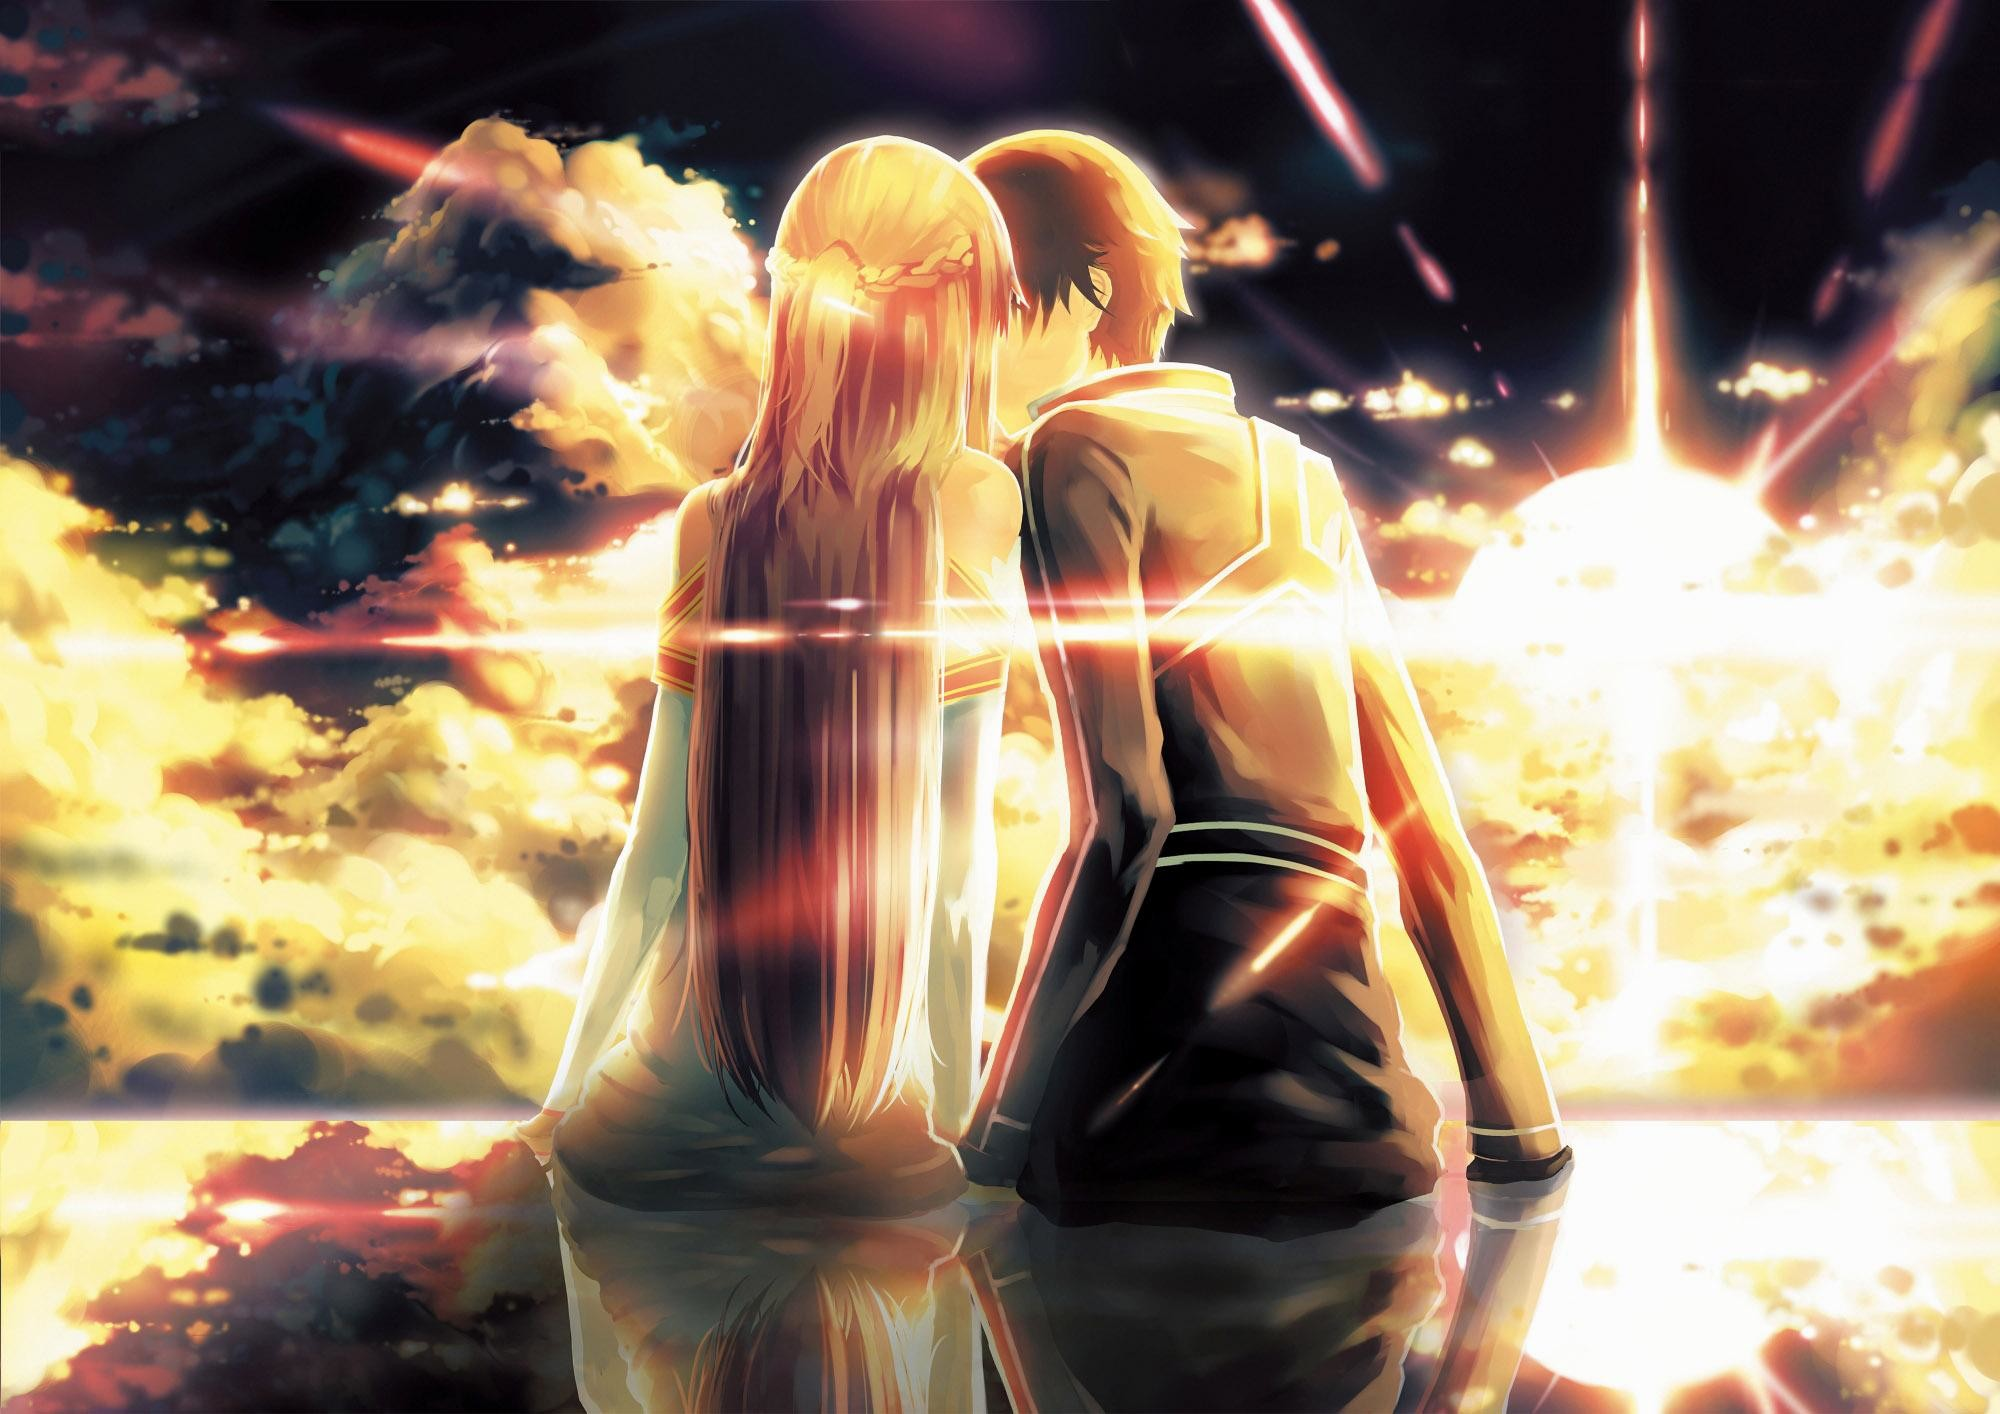 wallpaper.wiki-Cute-Anime-Couple-Image-Download-Free-